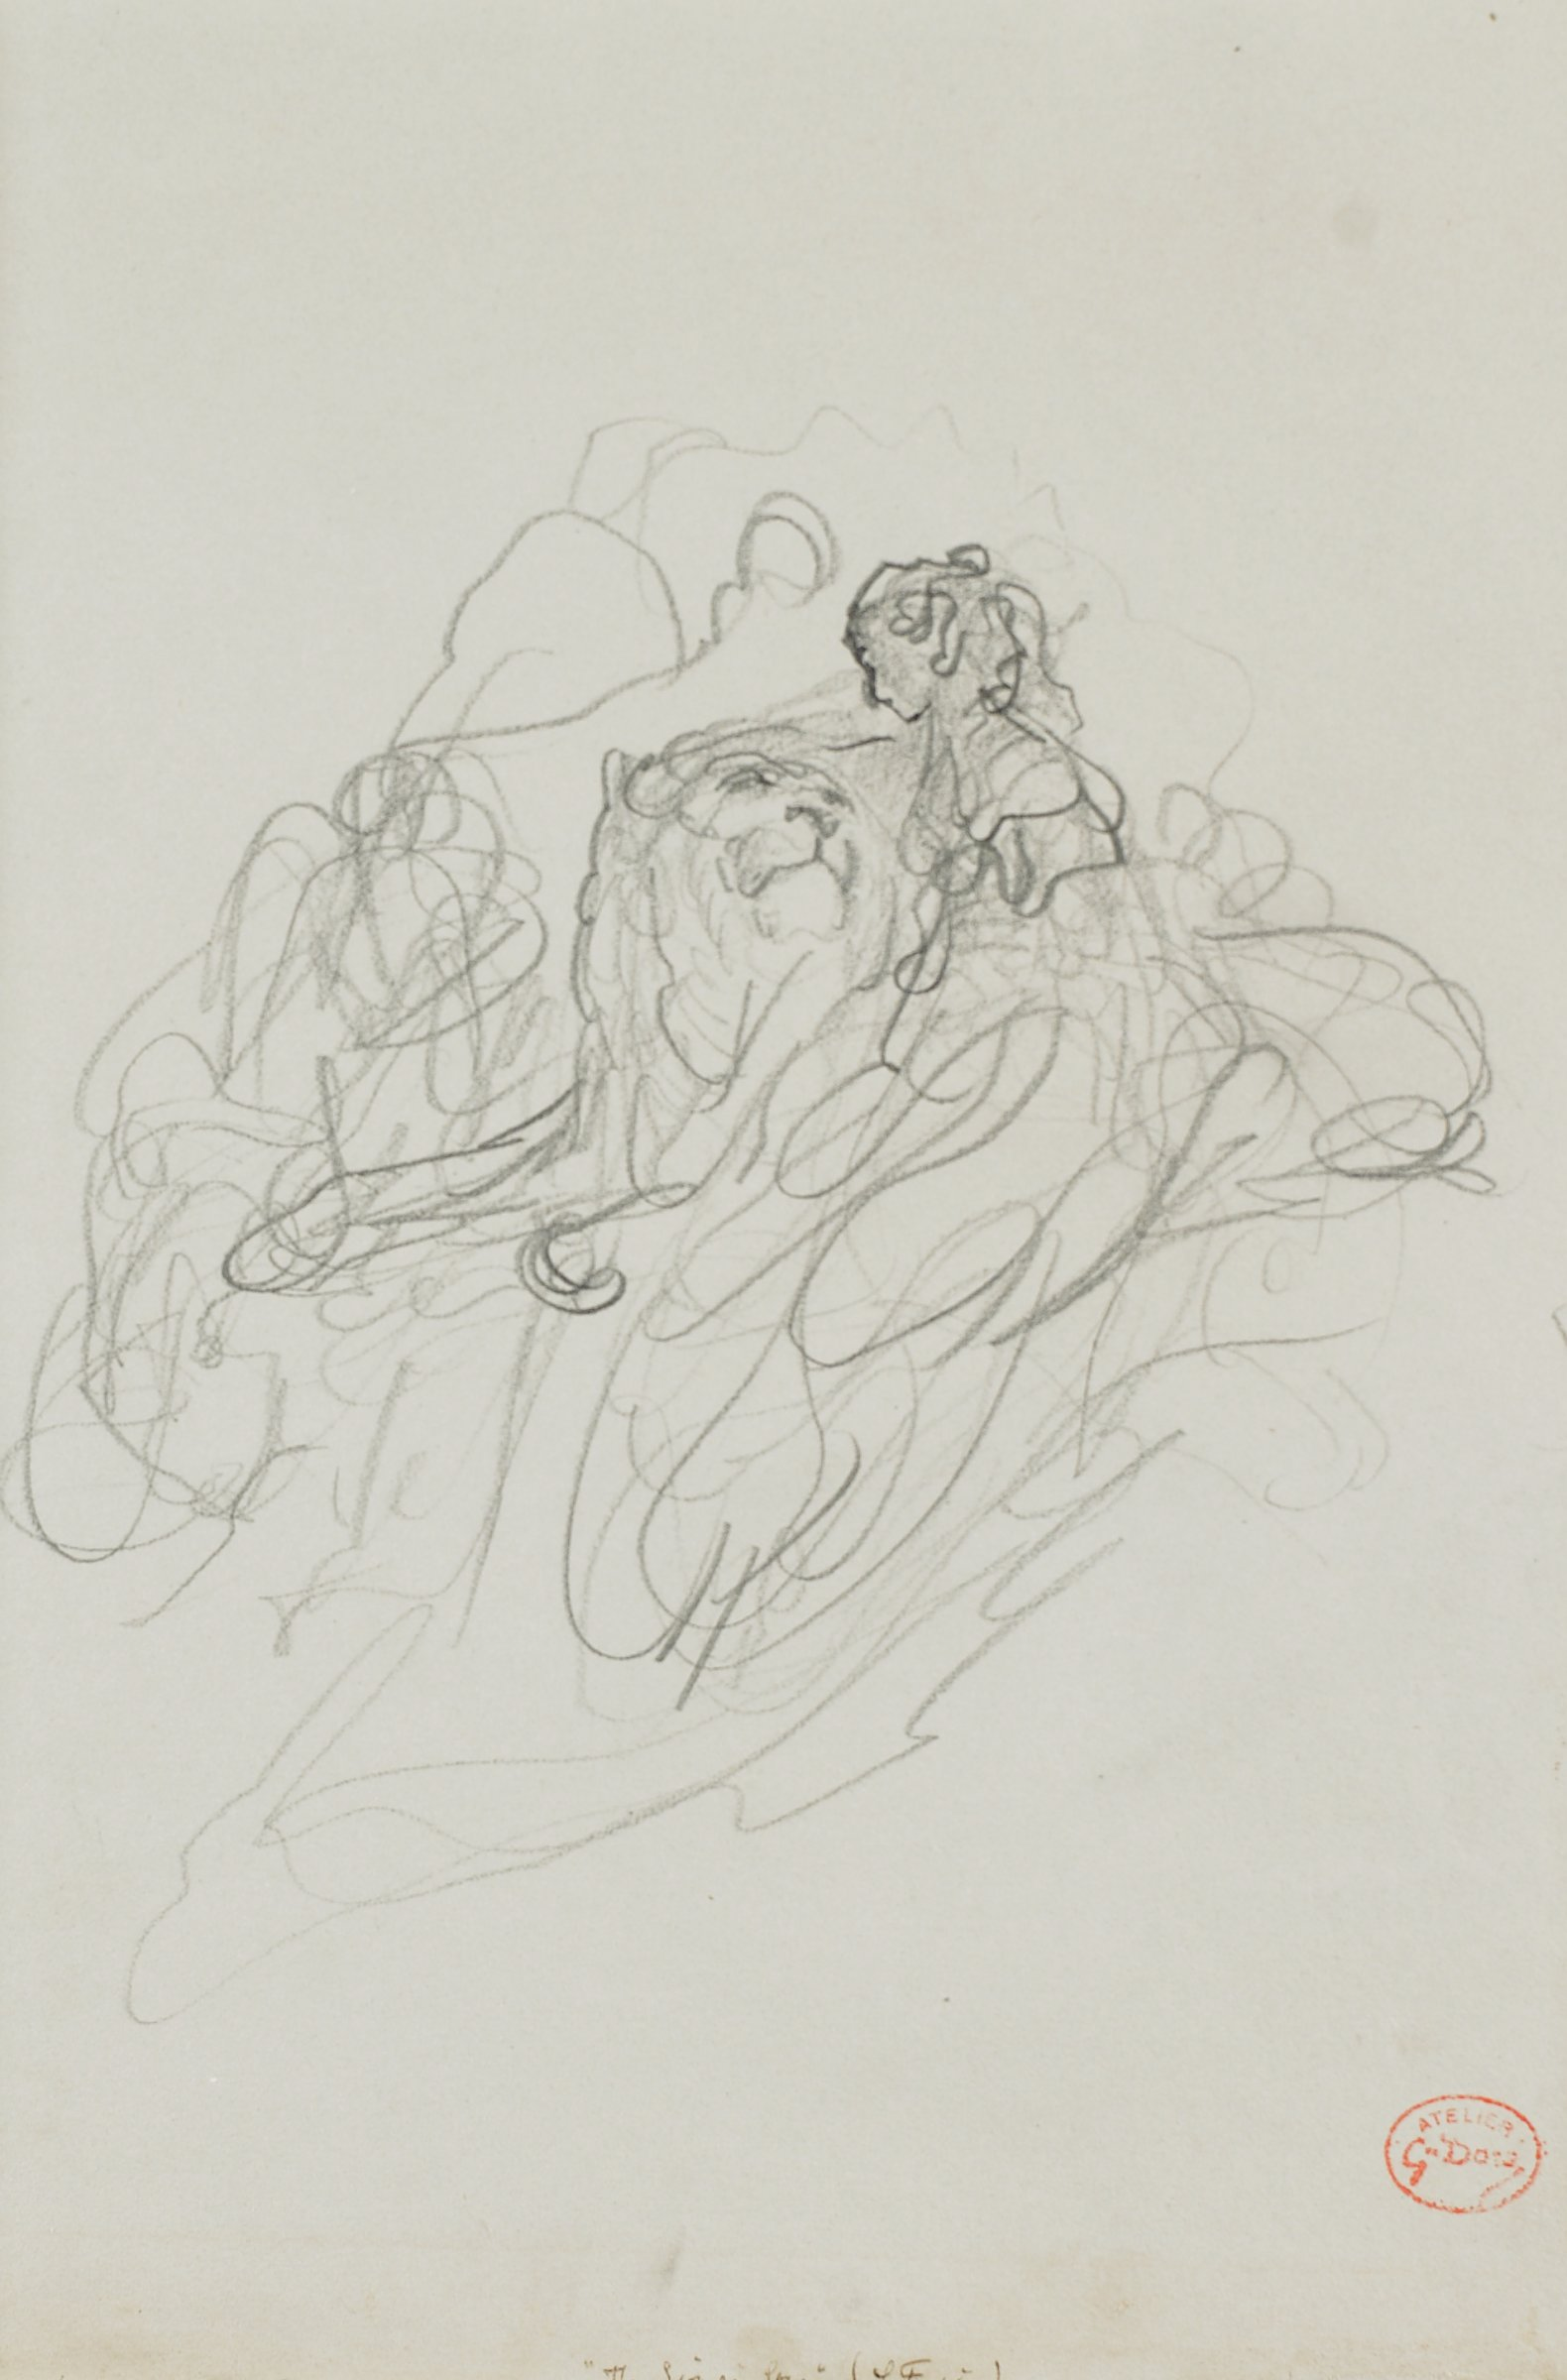 Sketch of a lion laying down with his head lifted upwards towards a woman figure. She kneels beside him. A series of lines populate the areas around them.